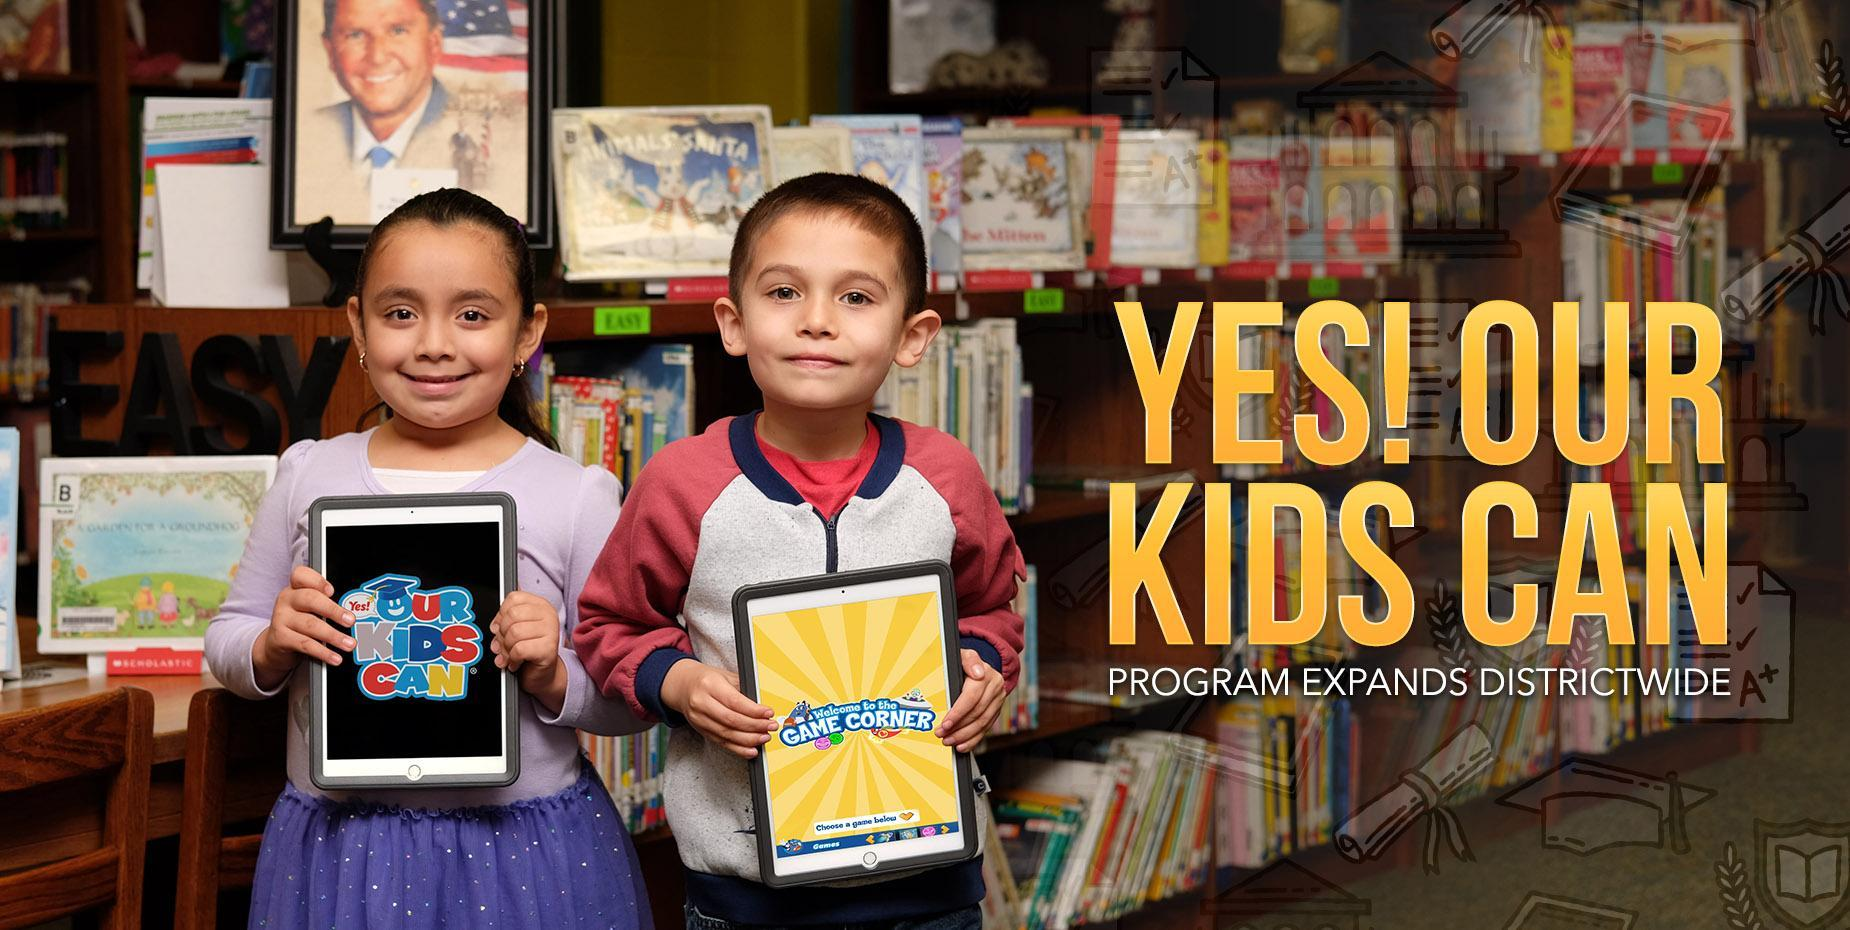 Yes! Our Kids Can program expands districtwide